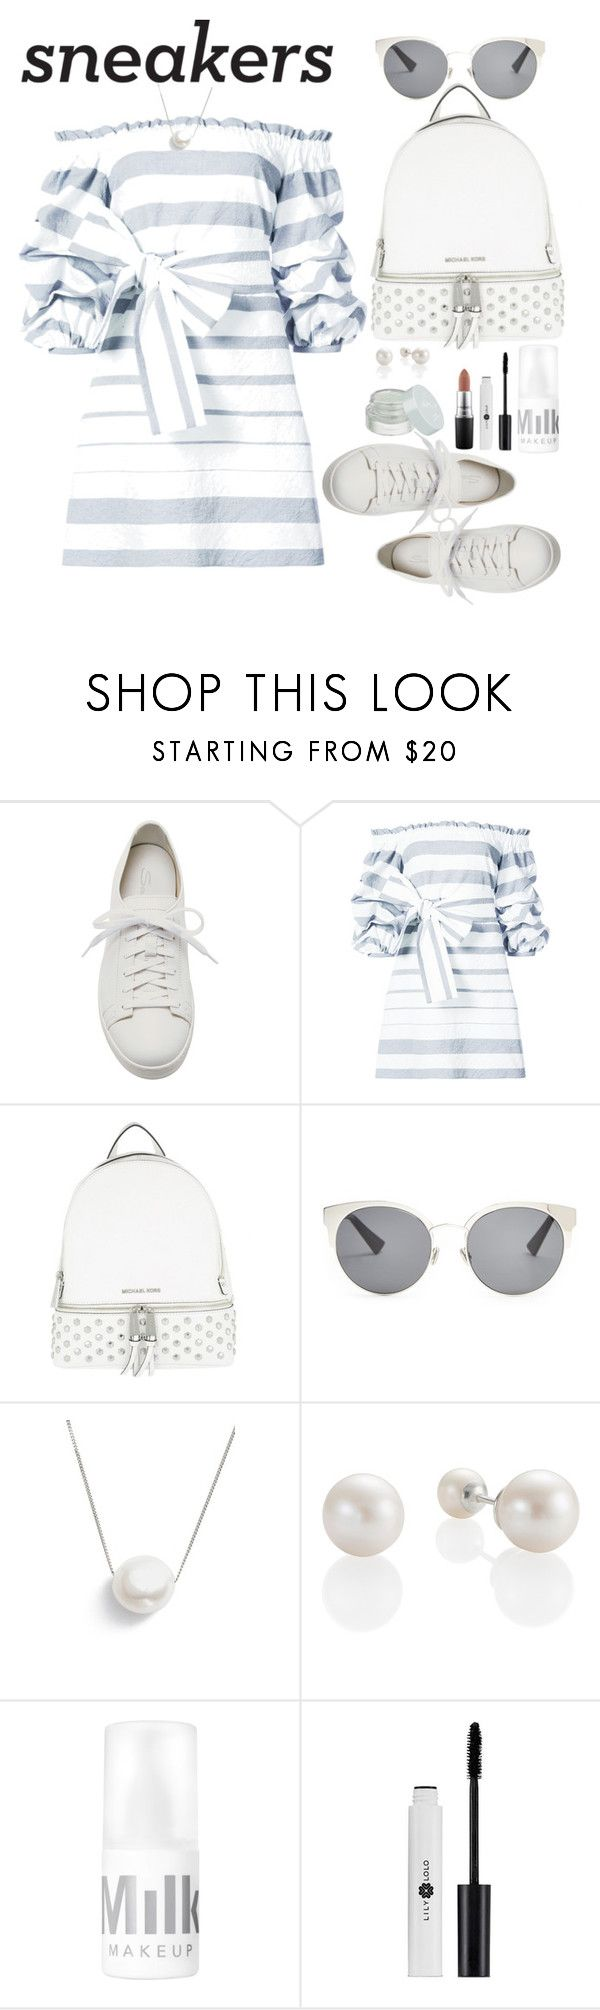 """""""White Sneakers"""" by marionmeyer ❤ liked on Polyvore featuring Santoni, Alexis, MICHAEL Michael Kors, Christian Dior, Chan Luu, MAC Cosmetics and whitesneakers"""